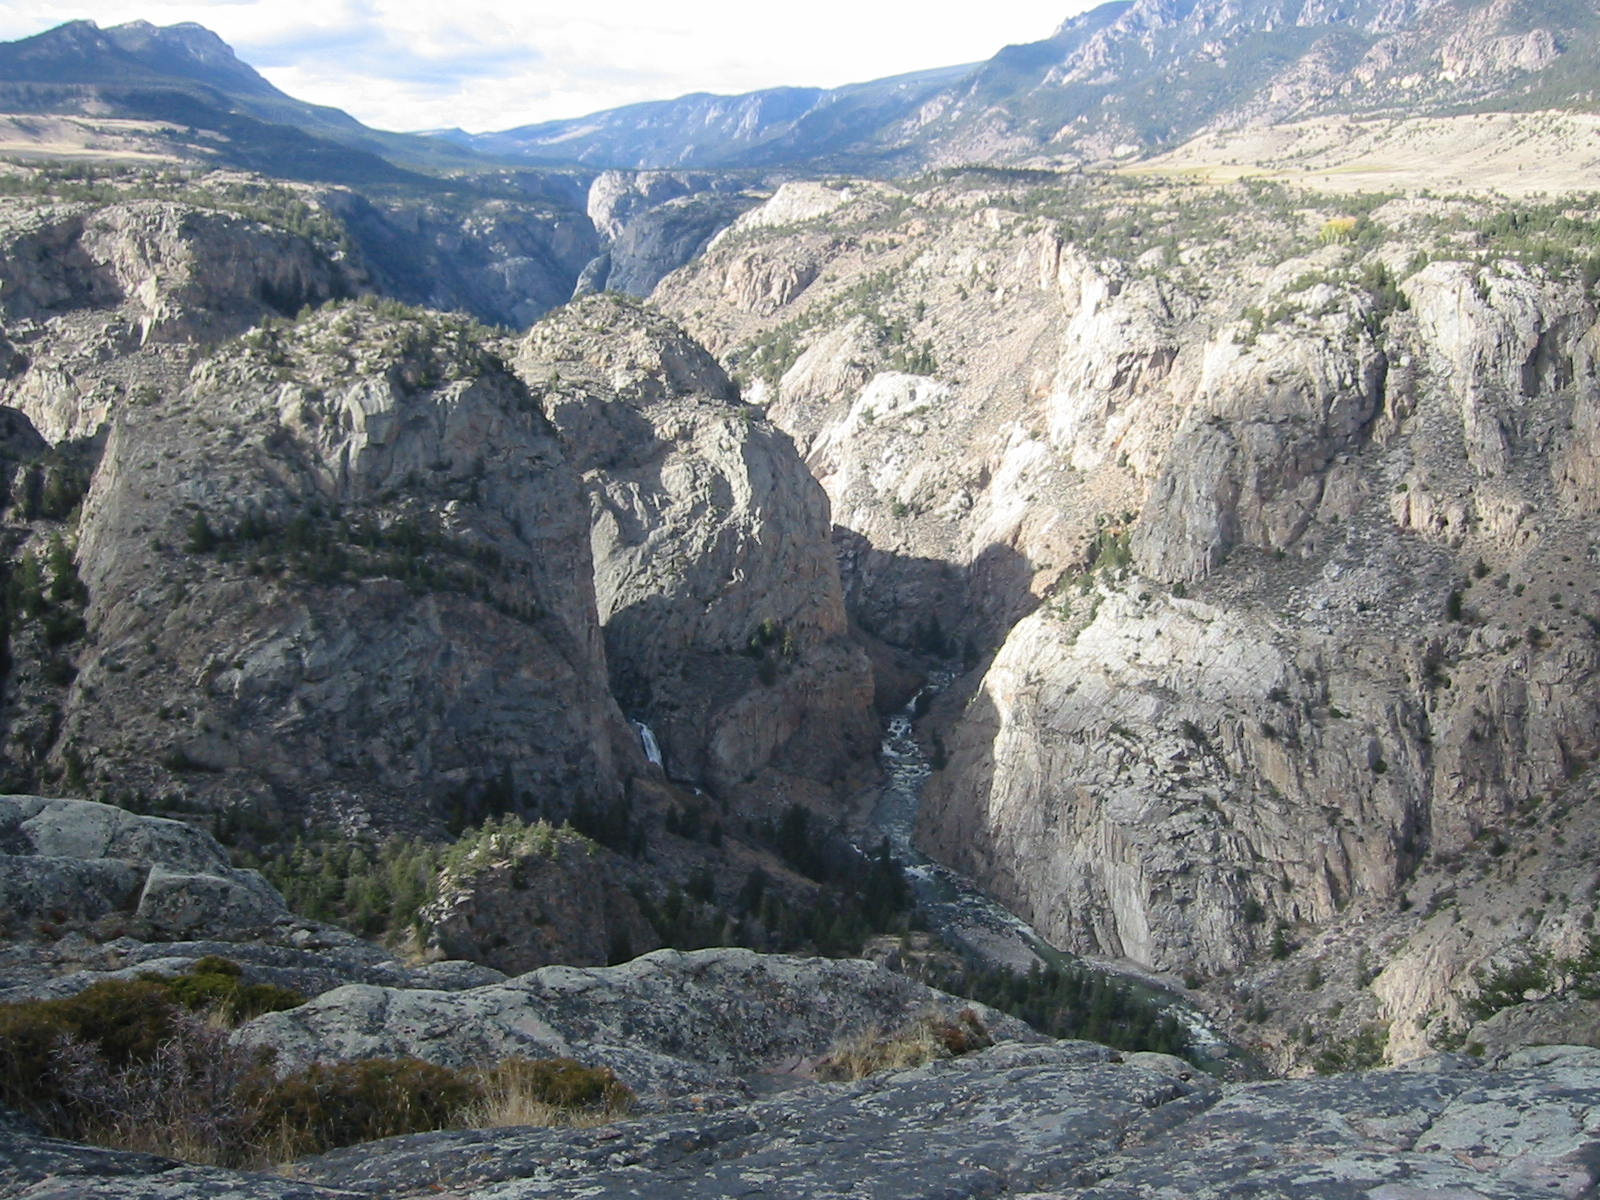 Clarks Fork's Canyon with Sunlight Falls